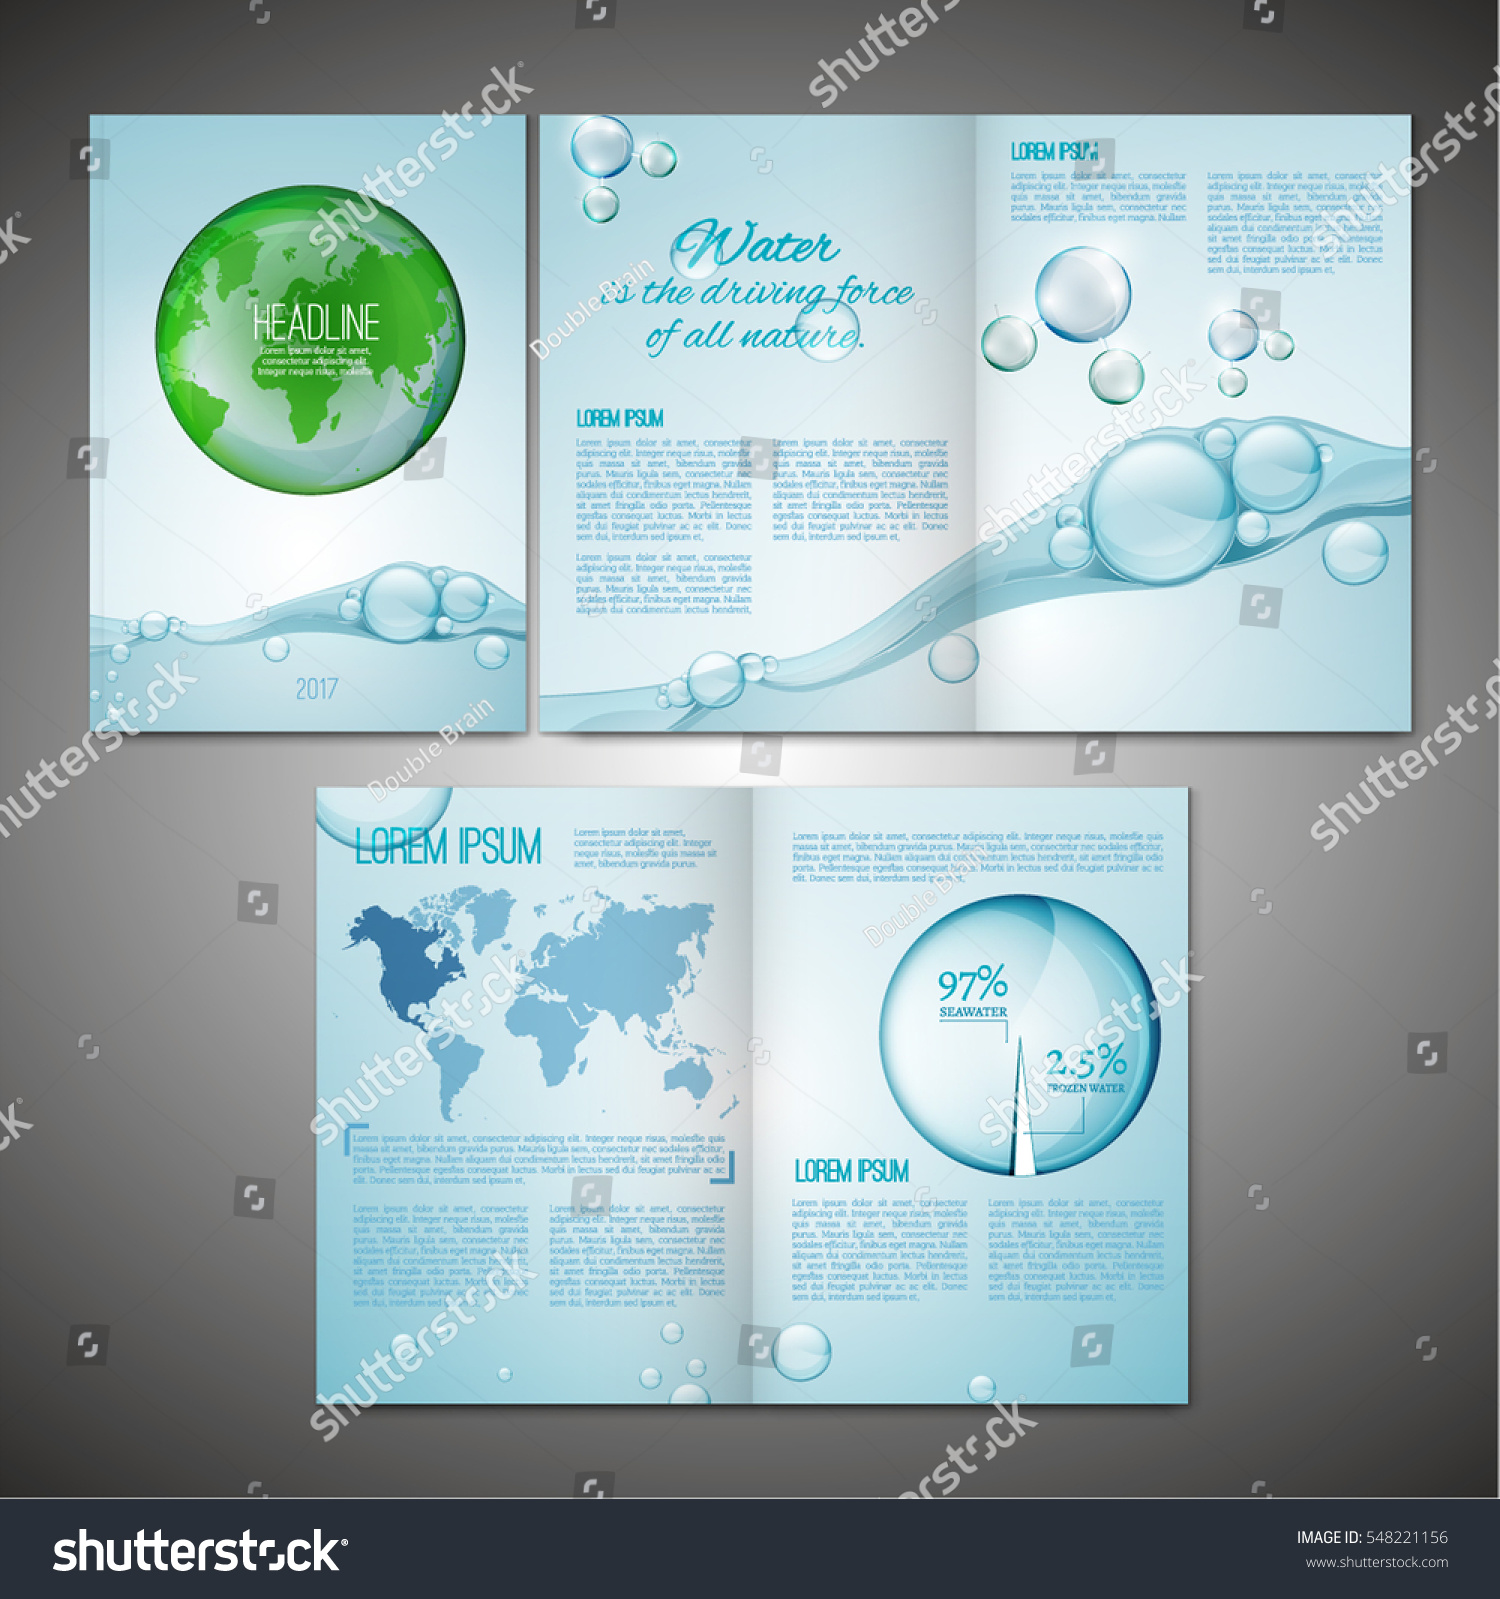 vector ecological brochure template with infographic element modern background for poster print flyer